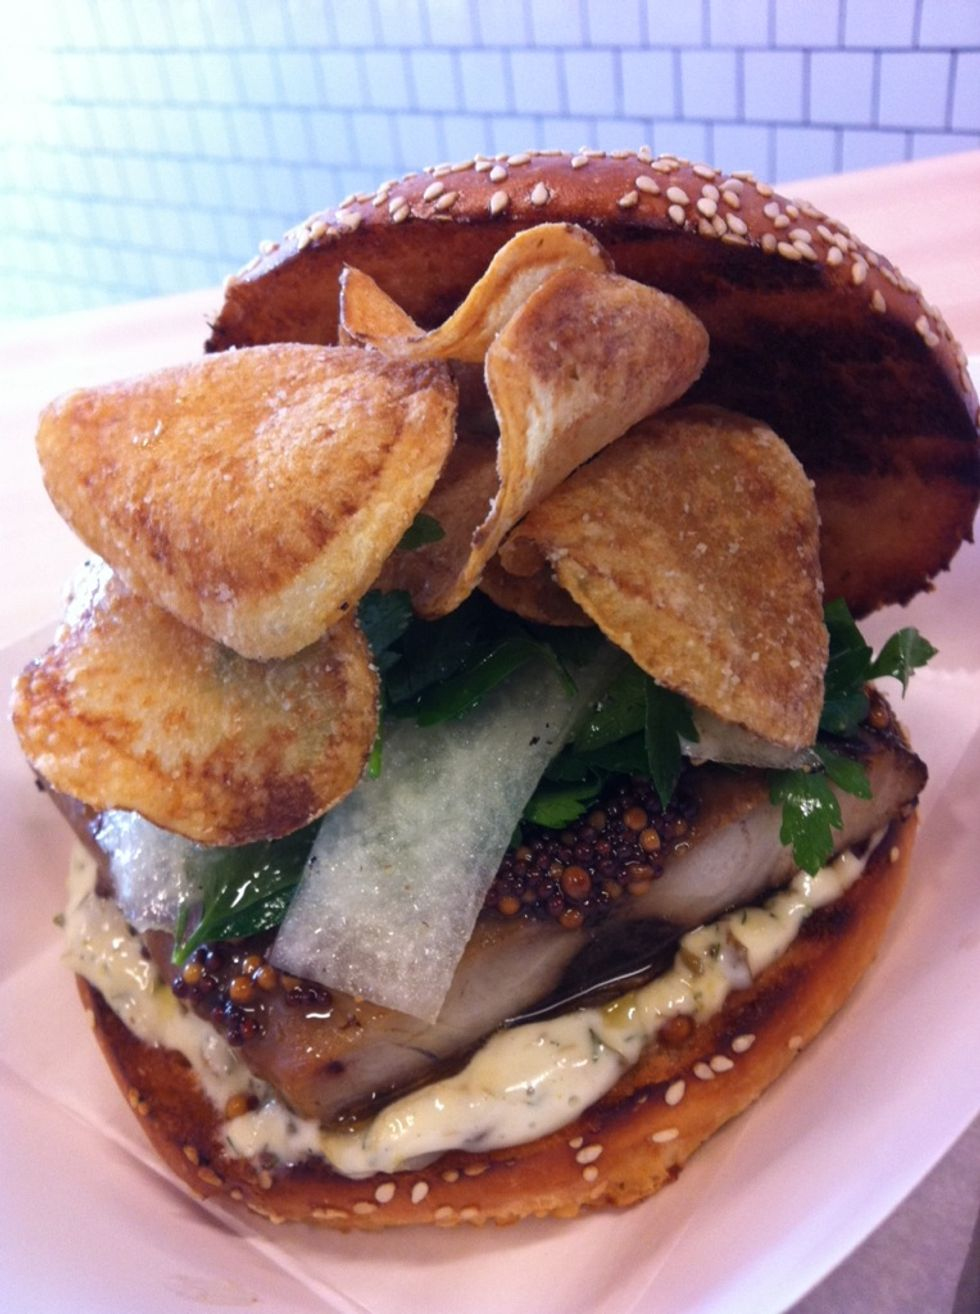 Sandwich of the Week: Smoked Bluefish Special from Mile End Sandwich